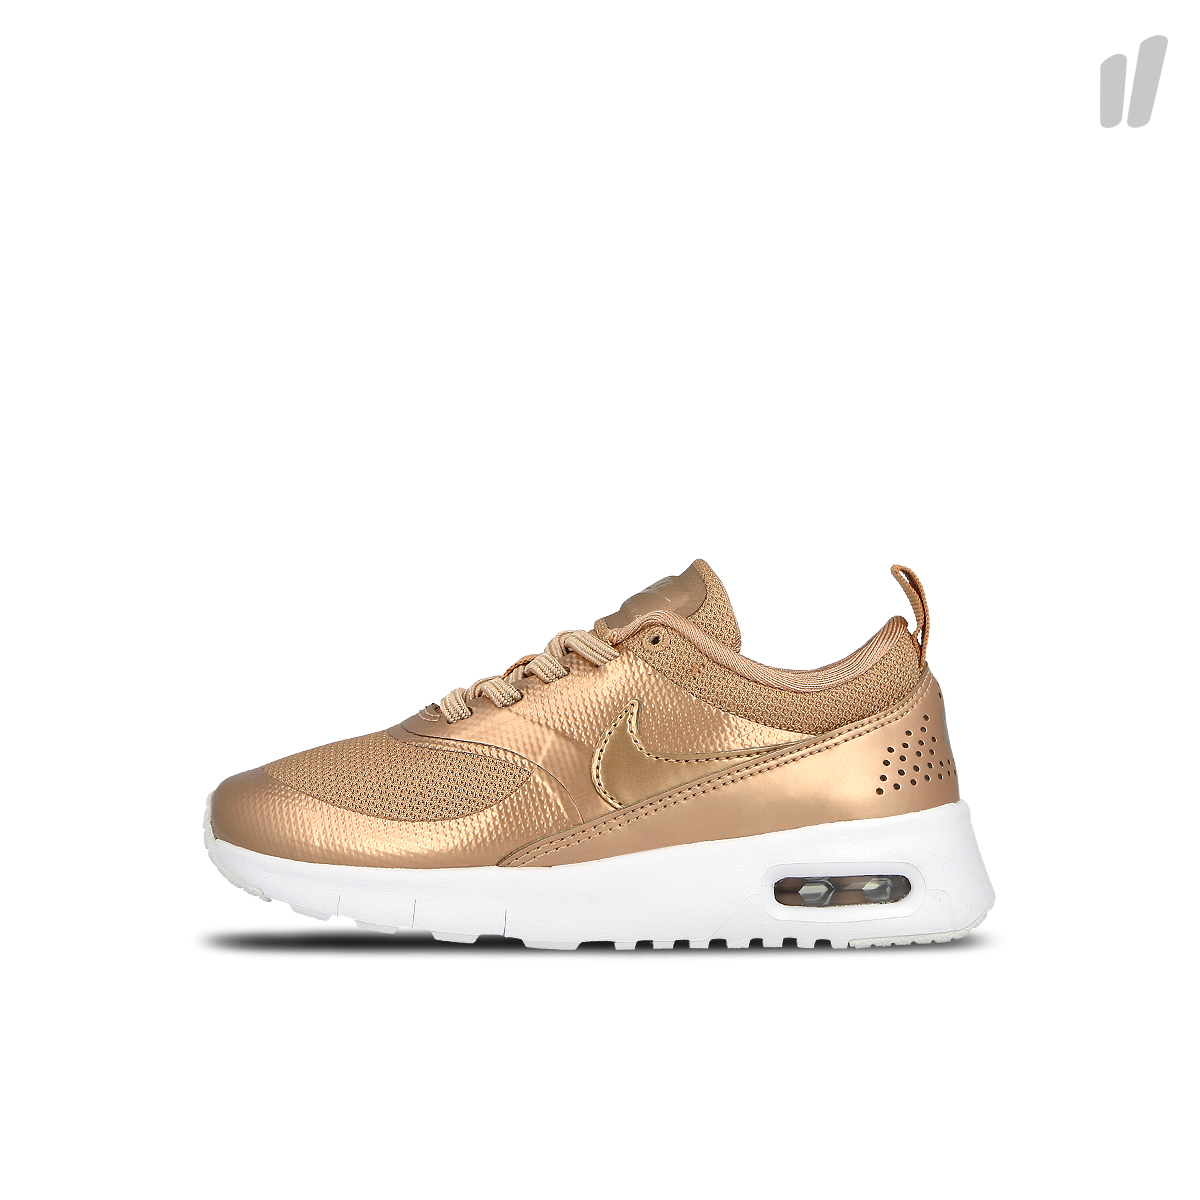 Nike Air Max Thea SE PSE ( 859585 901 ) OVERKILL Berlin